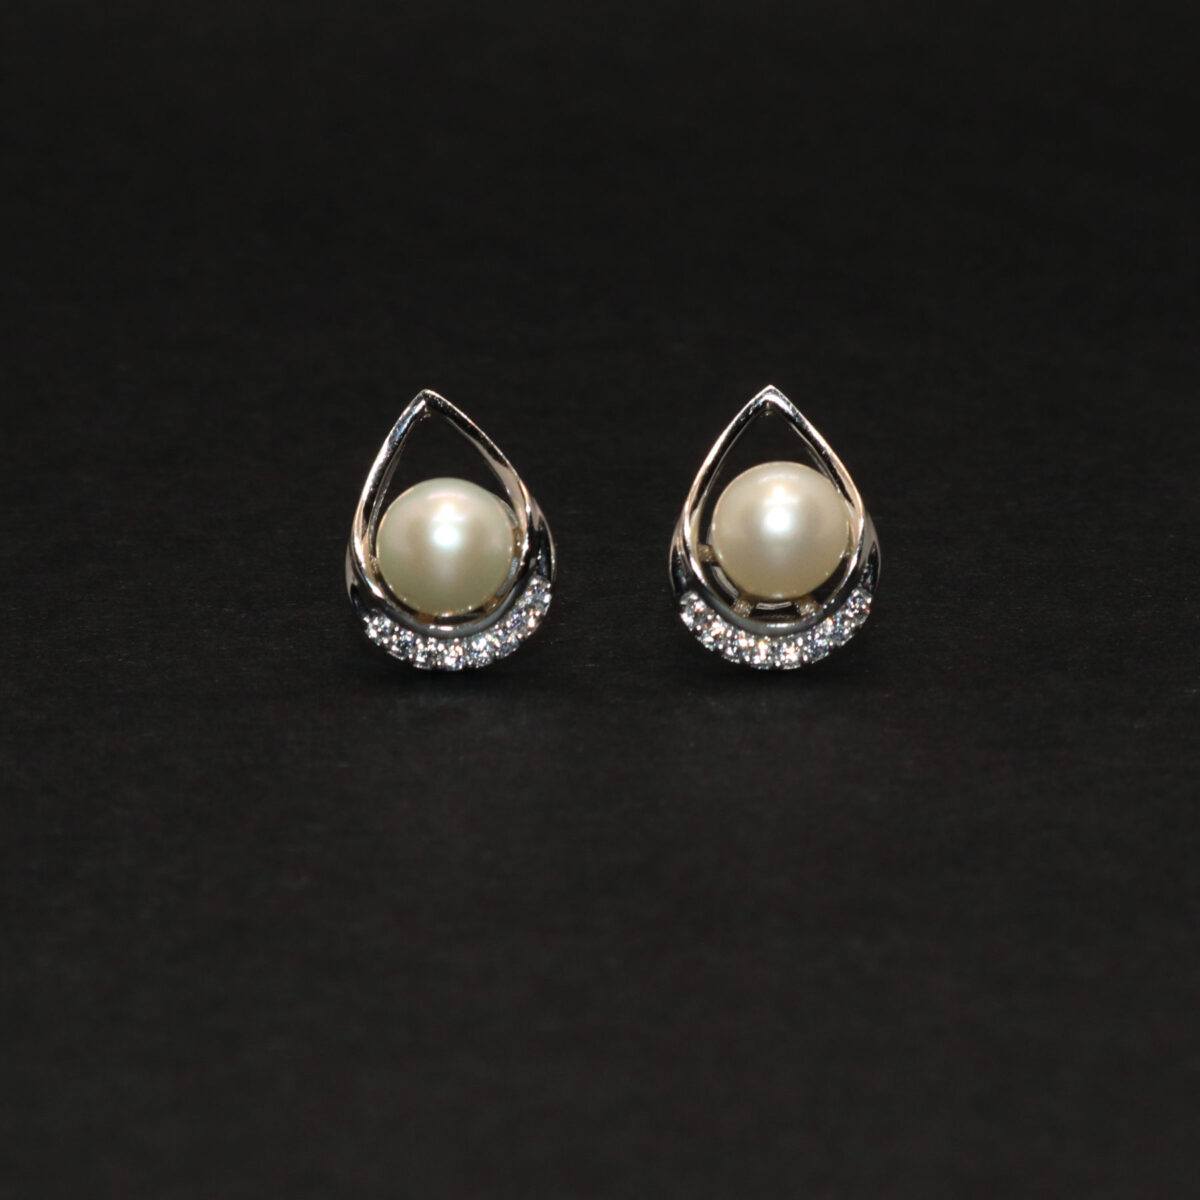 nature earrings in silver and pearl